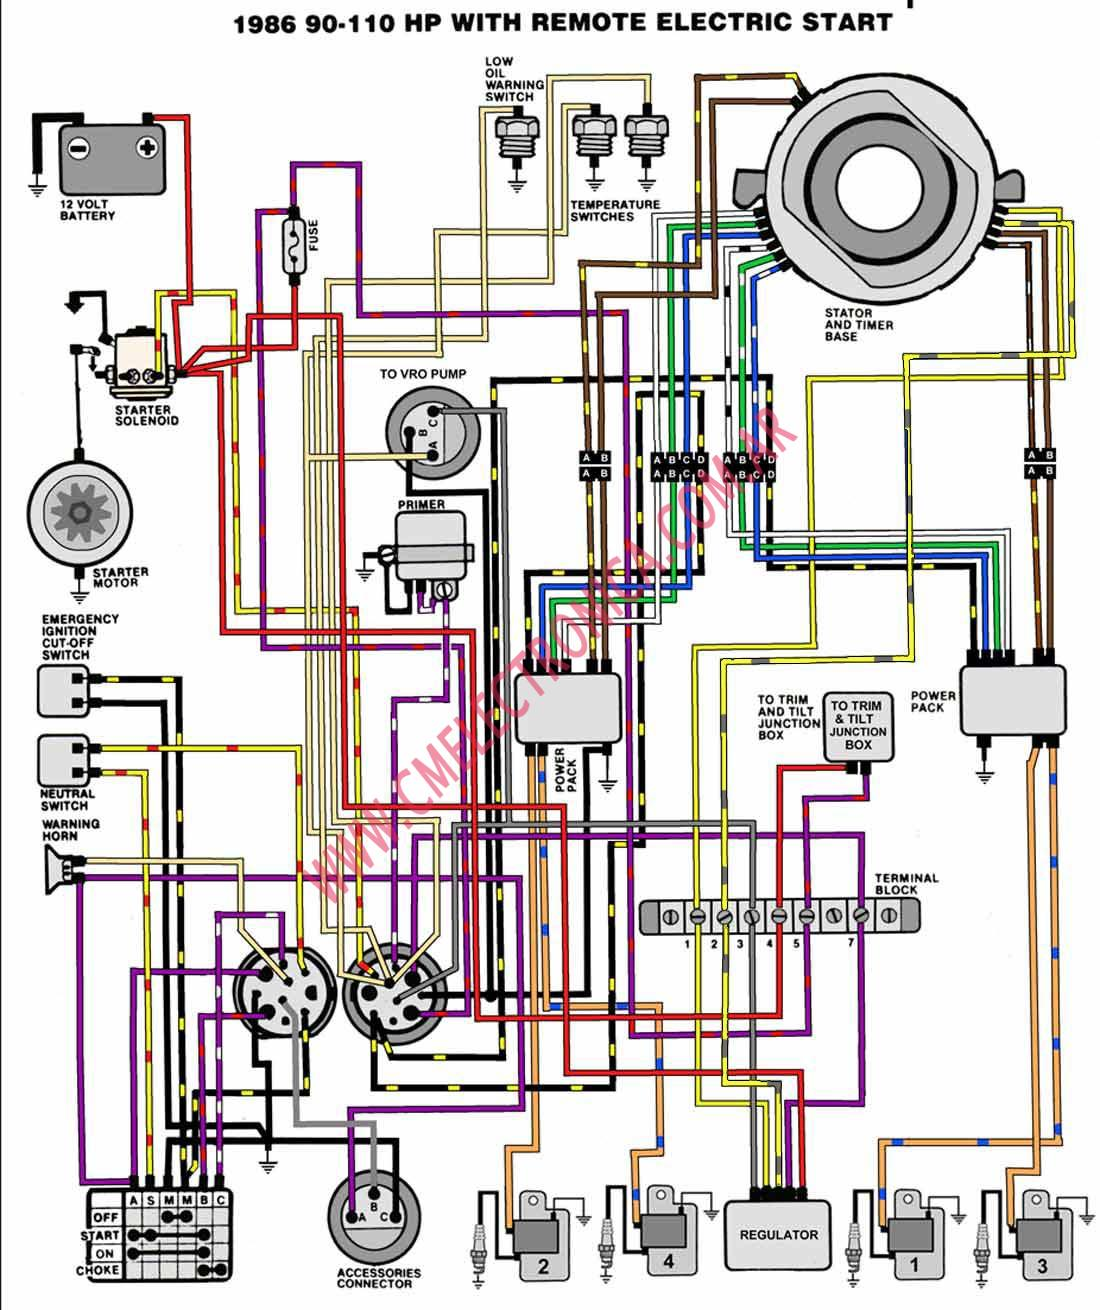 8 Hp Yamaha Outboard Charging Wire Diagram | Wiring ...  Hp Johnson Wiring Diagram on hp panel diagram, hp networking diagram, hp computer diagram, hp parts diagram, hp piping diagram, hp battery diagram, hp hardware diagram, hp power supply diagram, hp cable diagram,